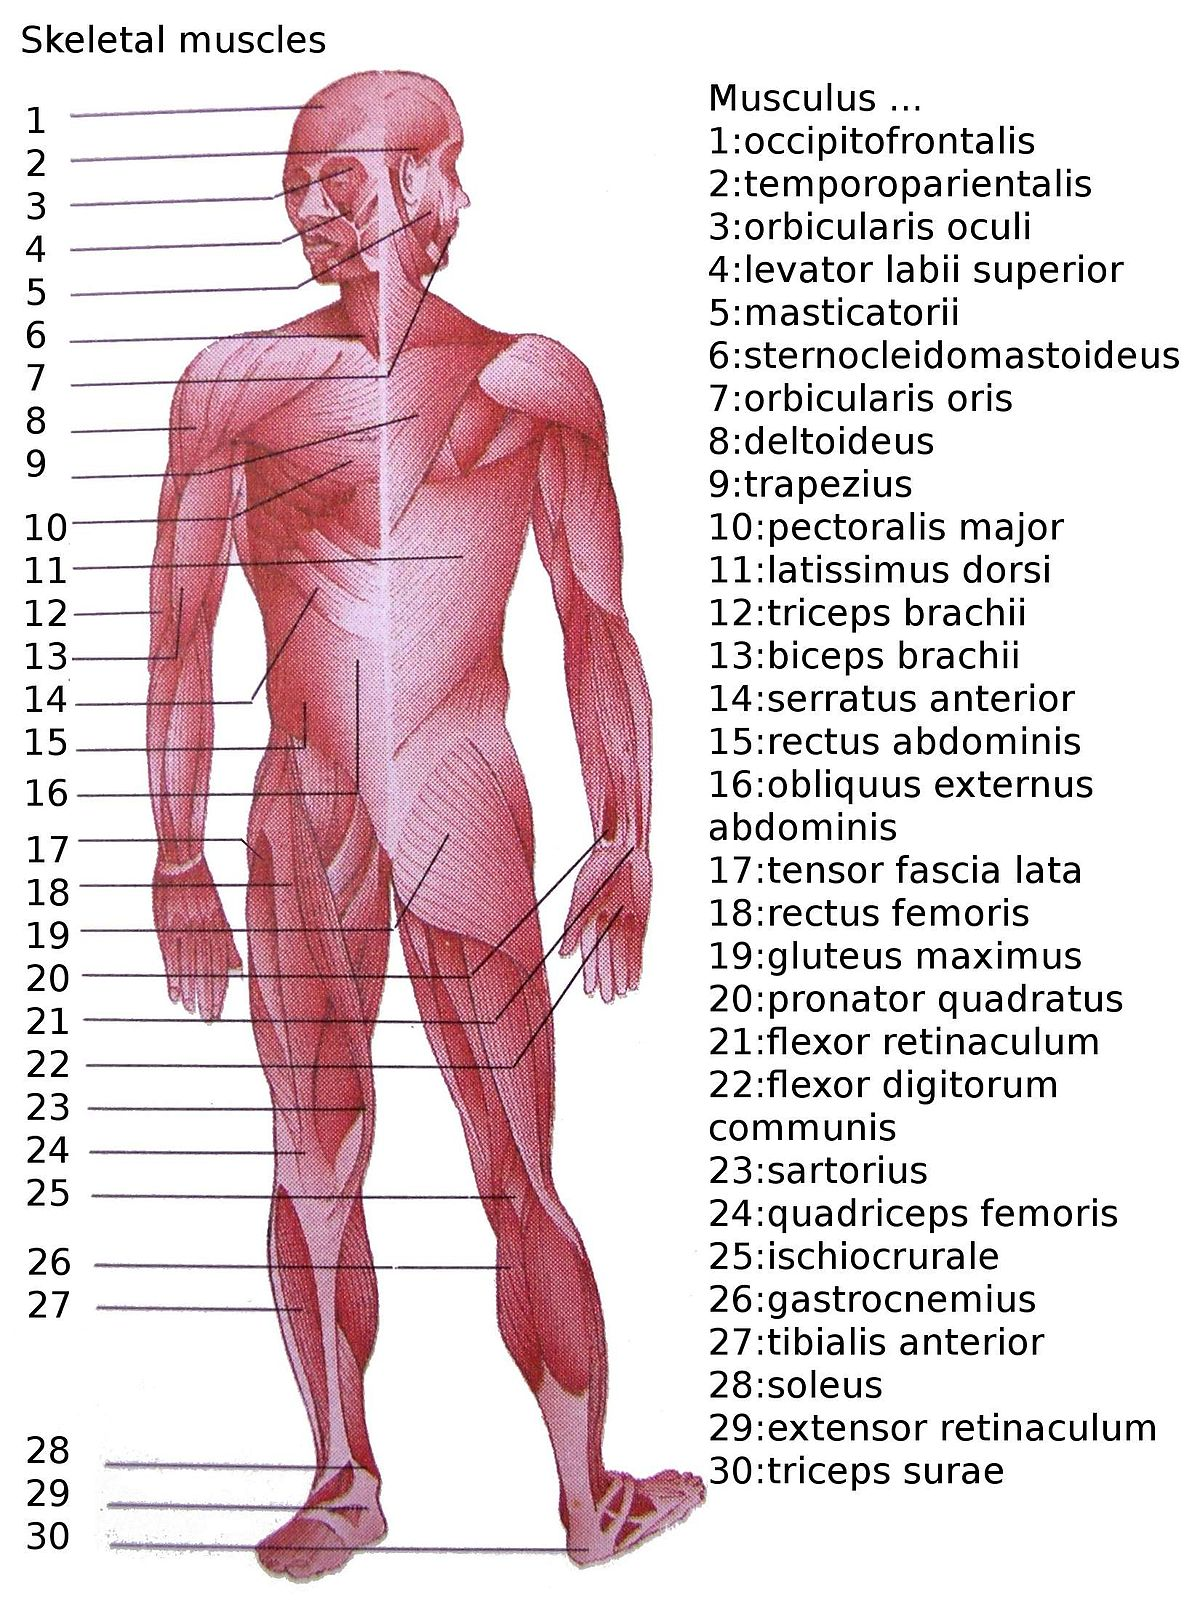 List of skeletal muscles of the human body - Wikipedia